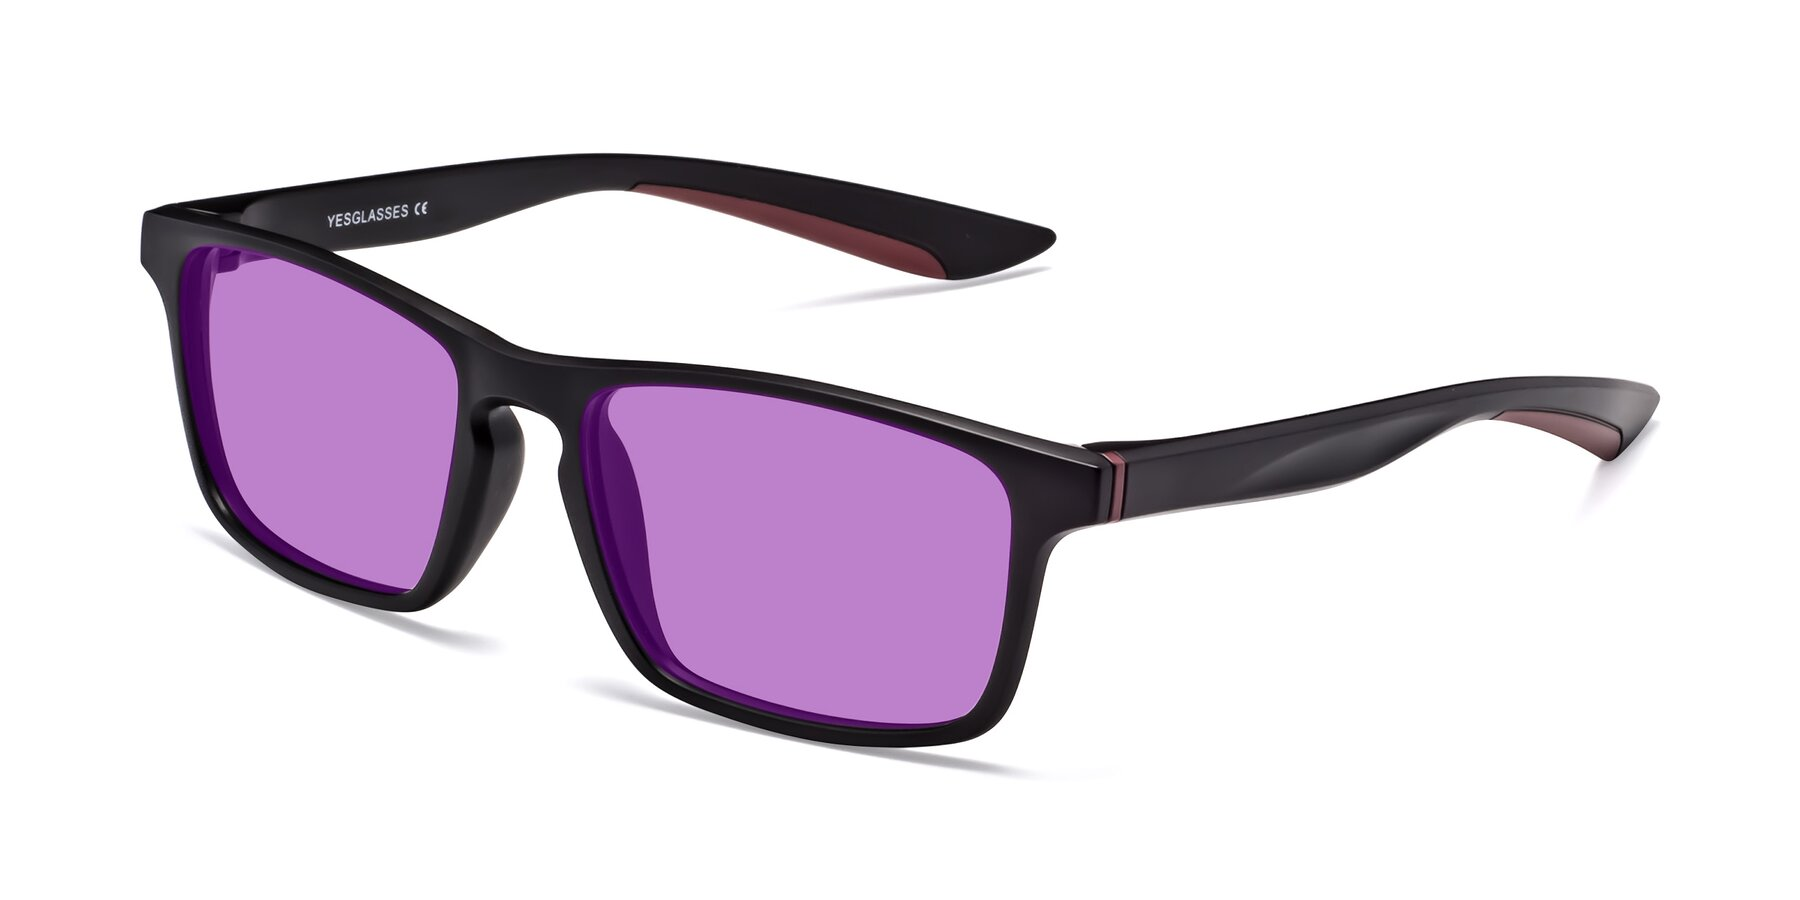 Angle of Passion in Matte Black-Wine with Medium Purple Tinted Lenses